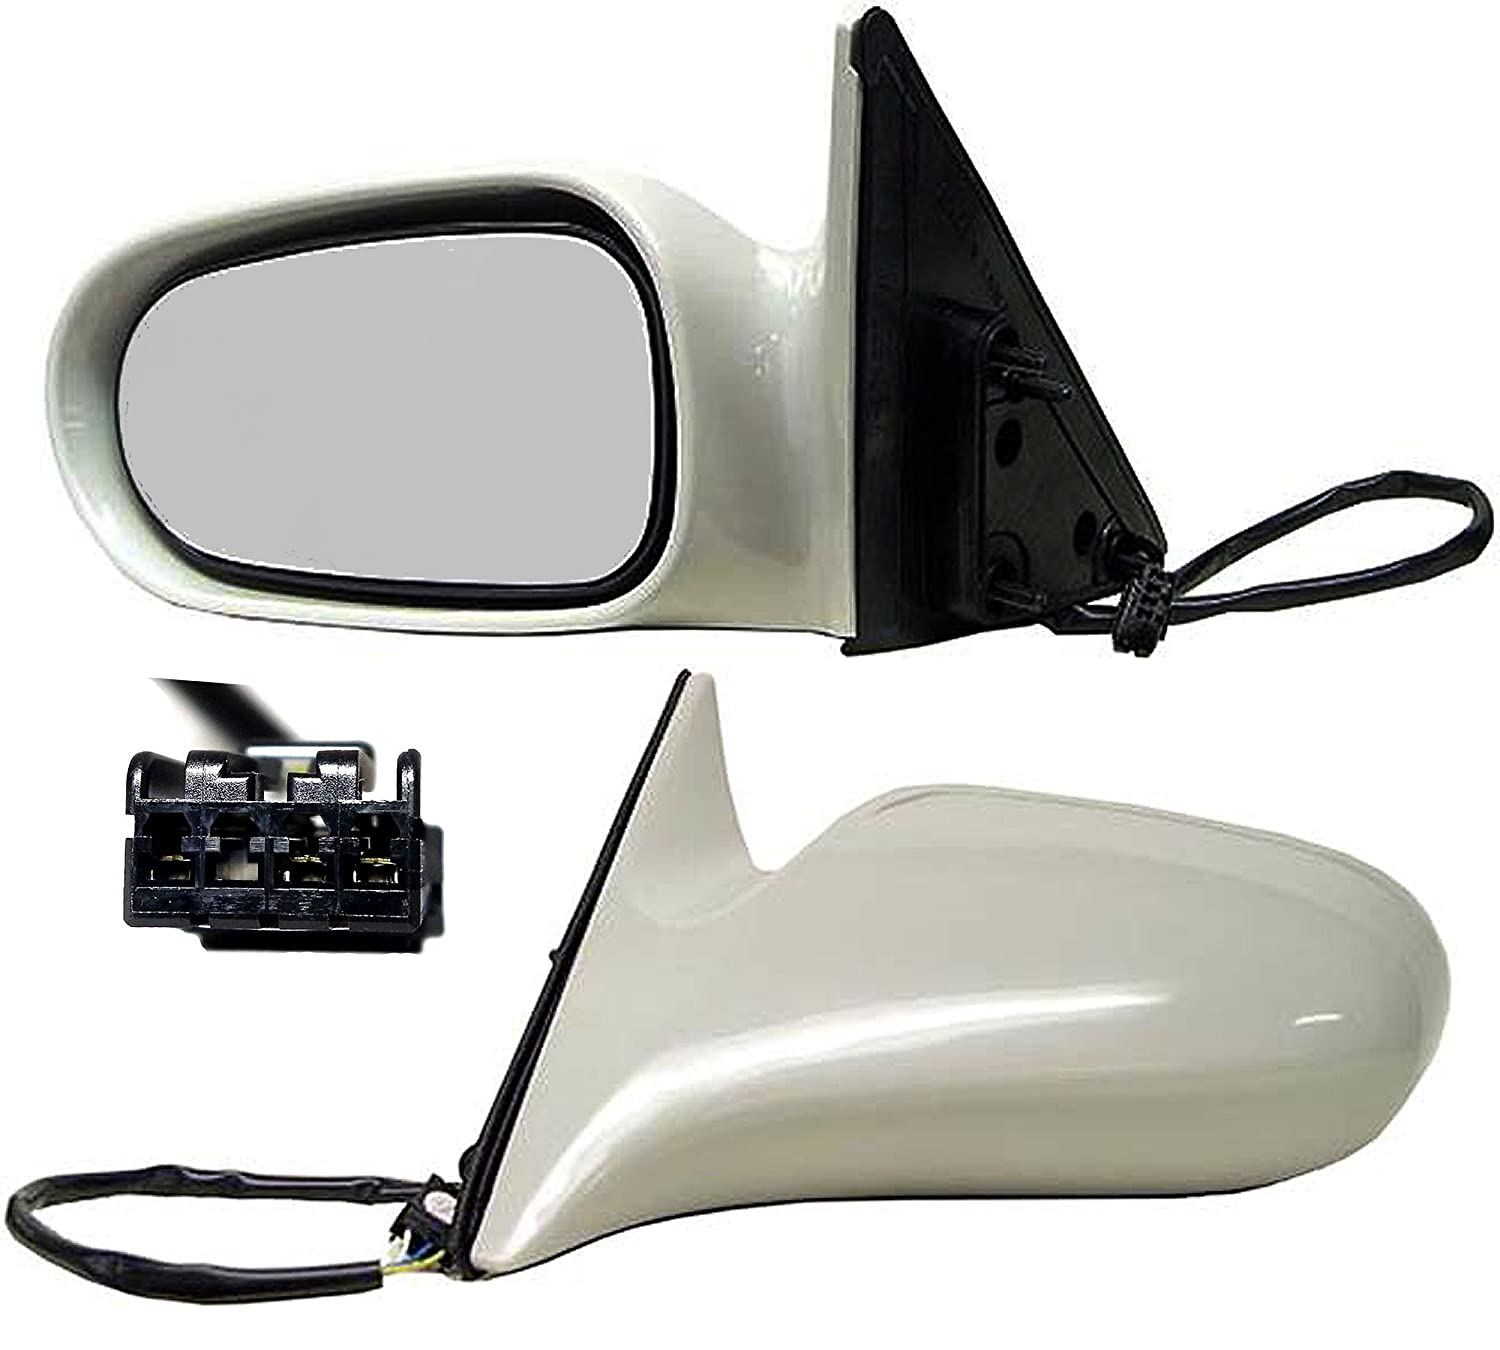 Gray Models Made In U.S.A. Only; Replaces GD7C69180CUK, GD7C69180ANN APDTY 0662627 Power Side View Mirror Assembly Fits Driver Side Left 1998-1999 Mazda 626